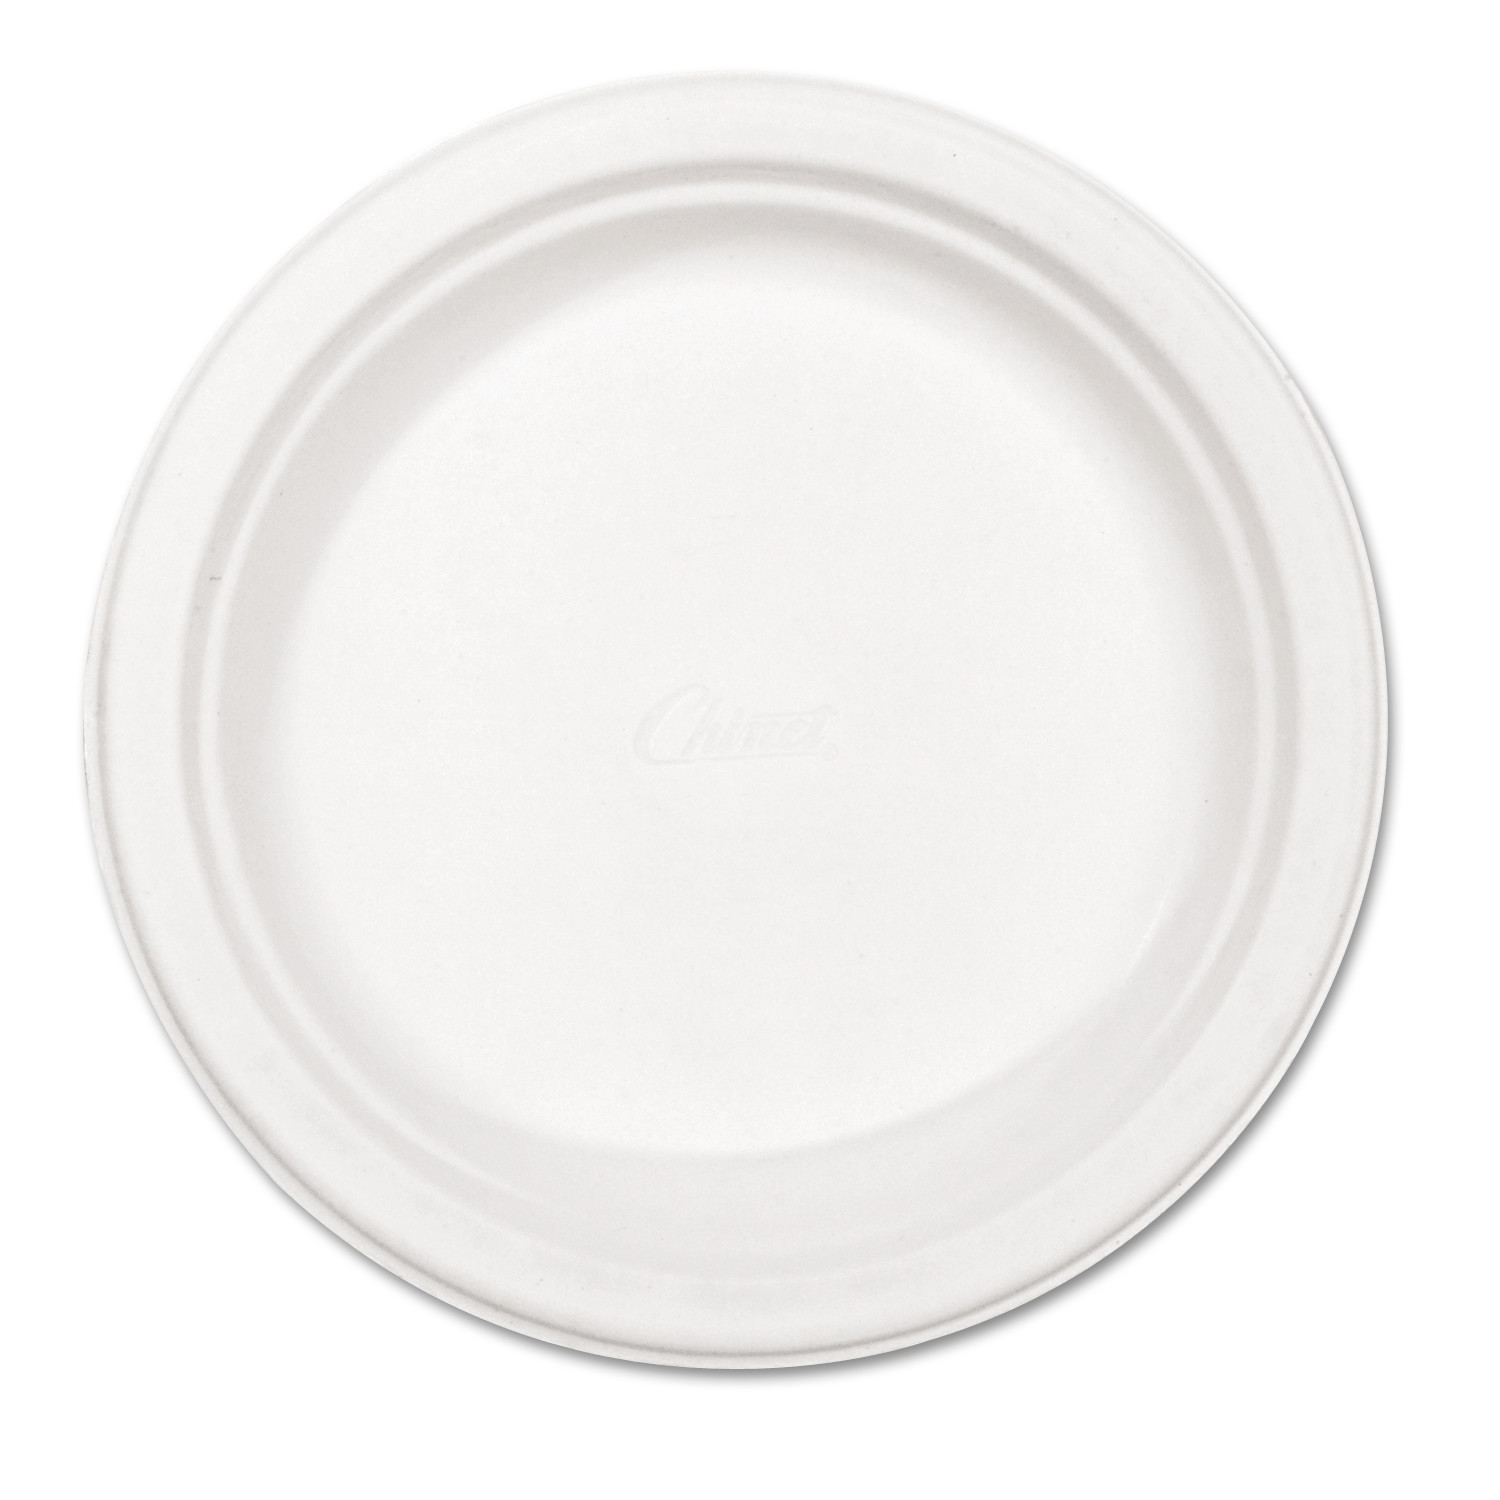 Chinet White Paper Plates 8.75\  Diameter 500 count  sc 1 st  Walmart & Chinet Paper Plates